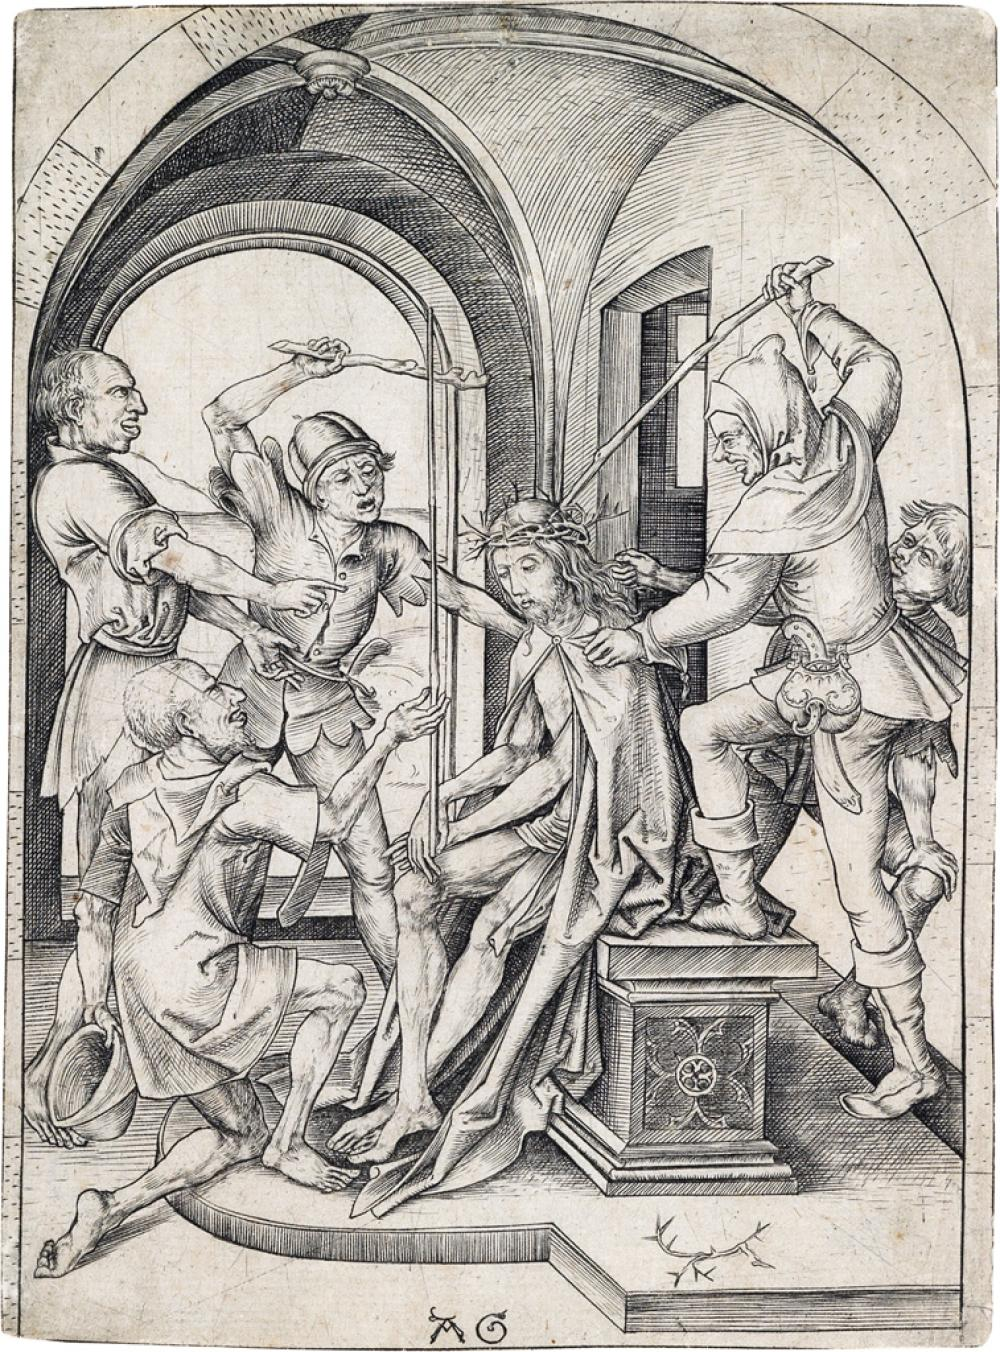 MASTER AG (ALBRECHT GLOCKENDON) (after Schongauer) The Crowning with Thorns